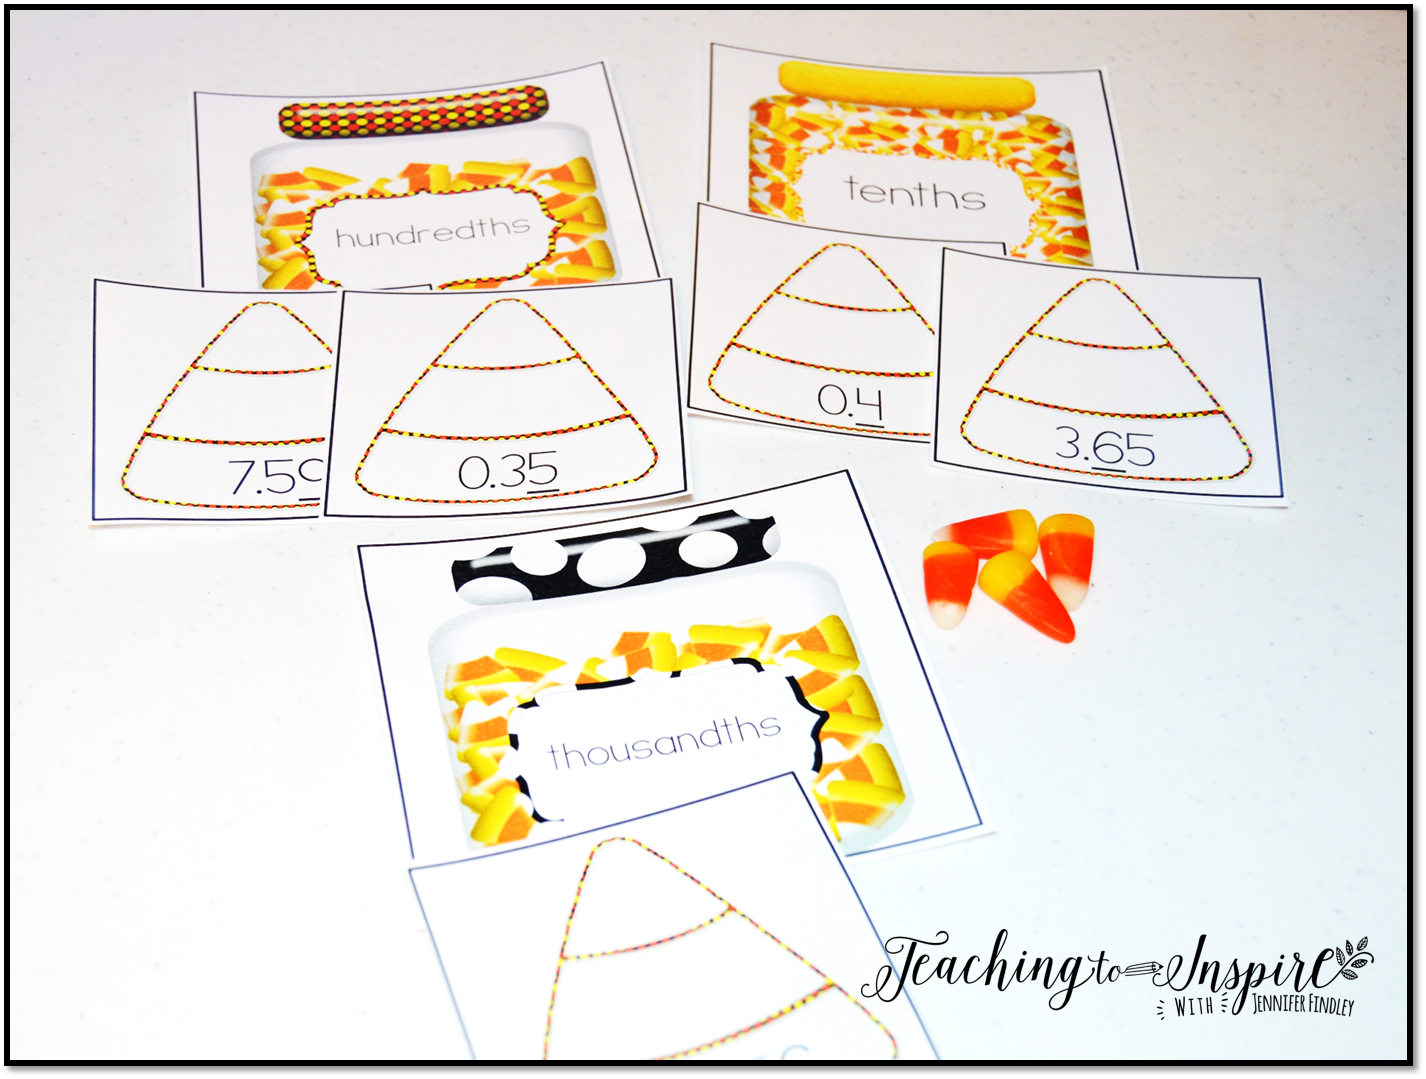 math worksheet : candy corn activities  teaching to inspire with jennifer findley : Candy Corn Math Worksheets